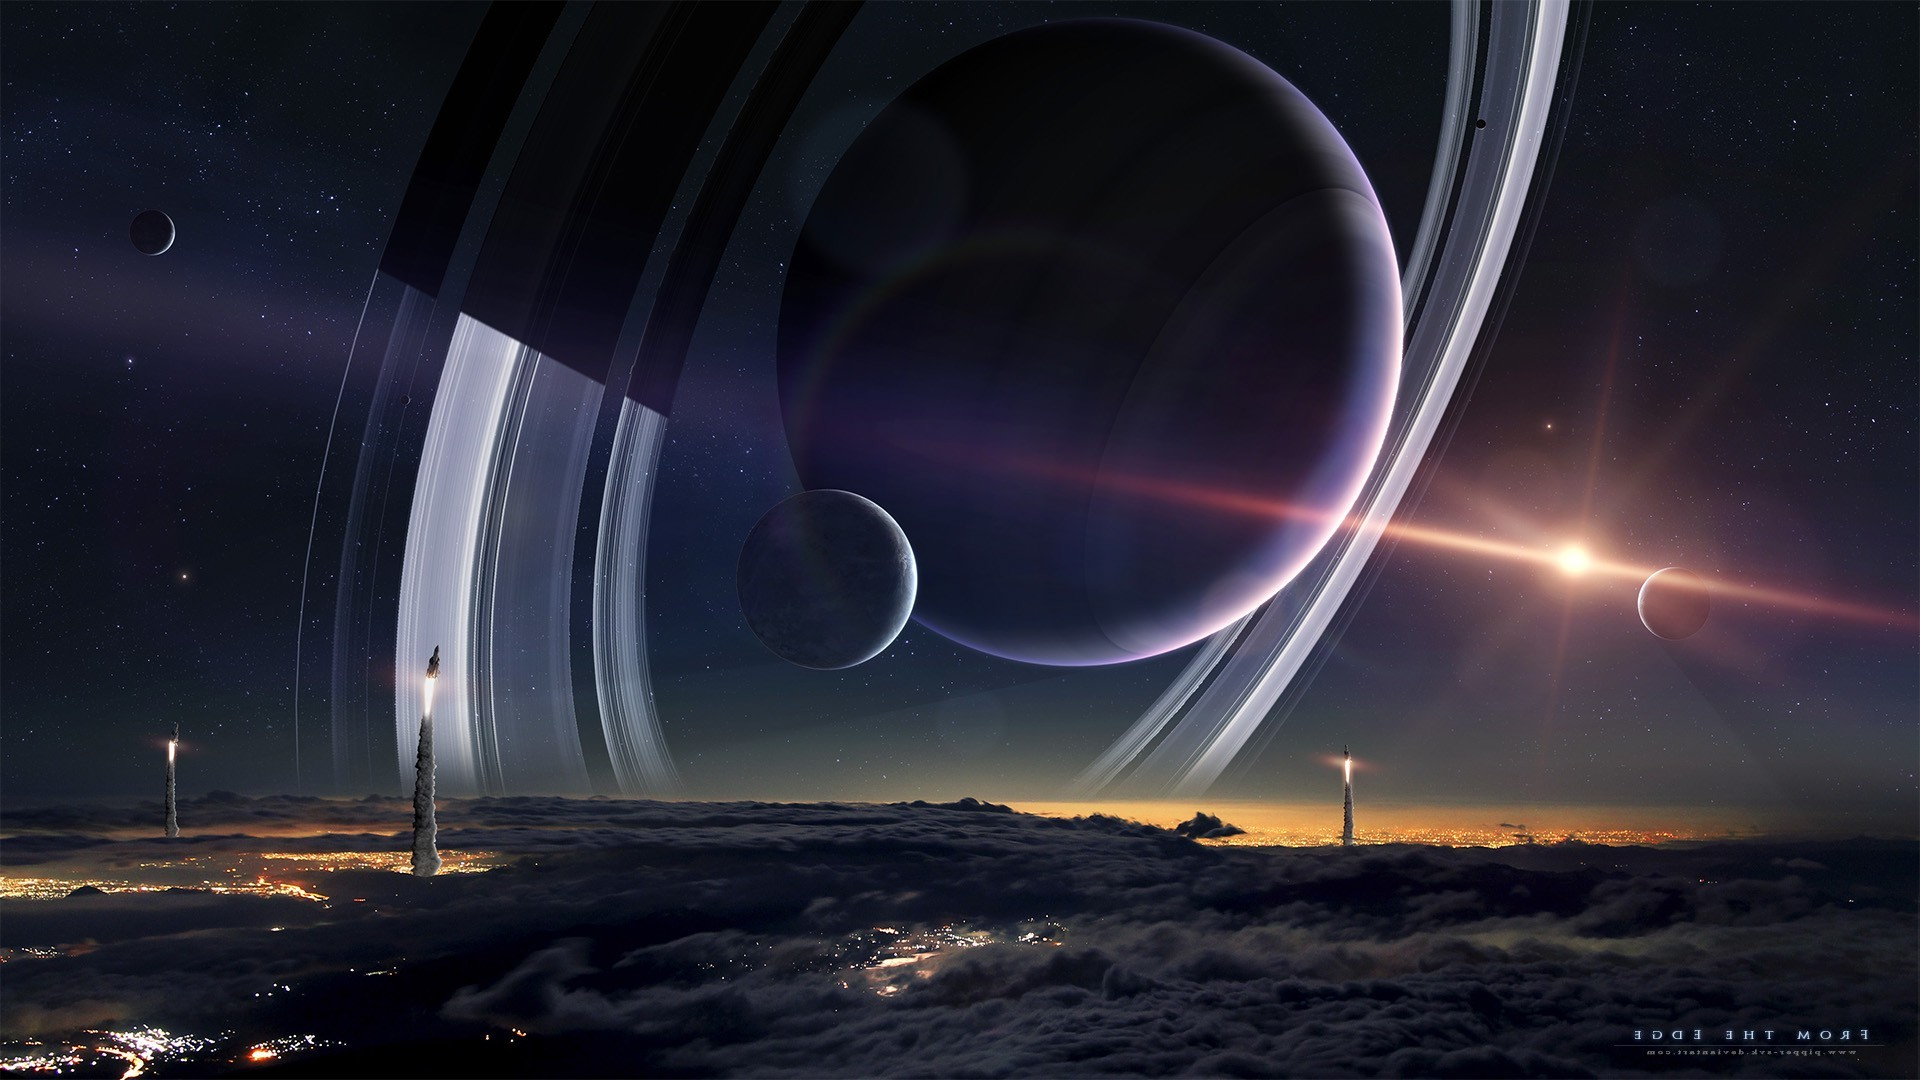 Space planet wallpapers 76 images - Space moon wallpaper ...